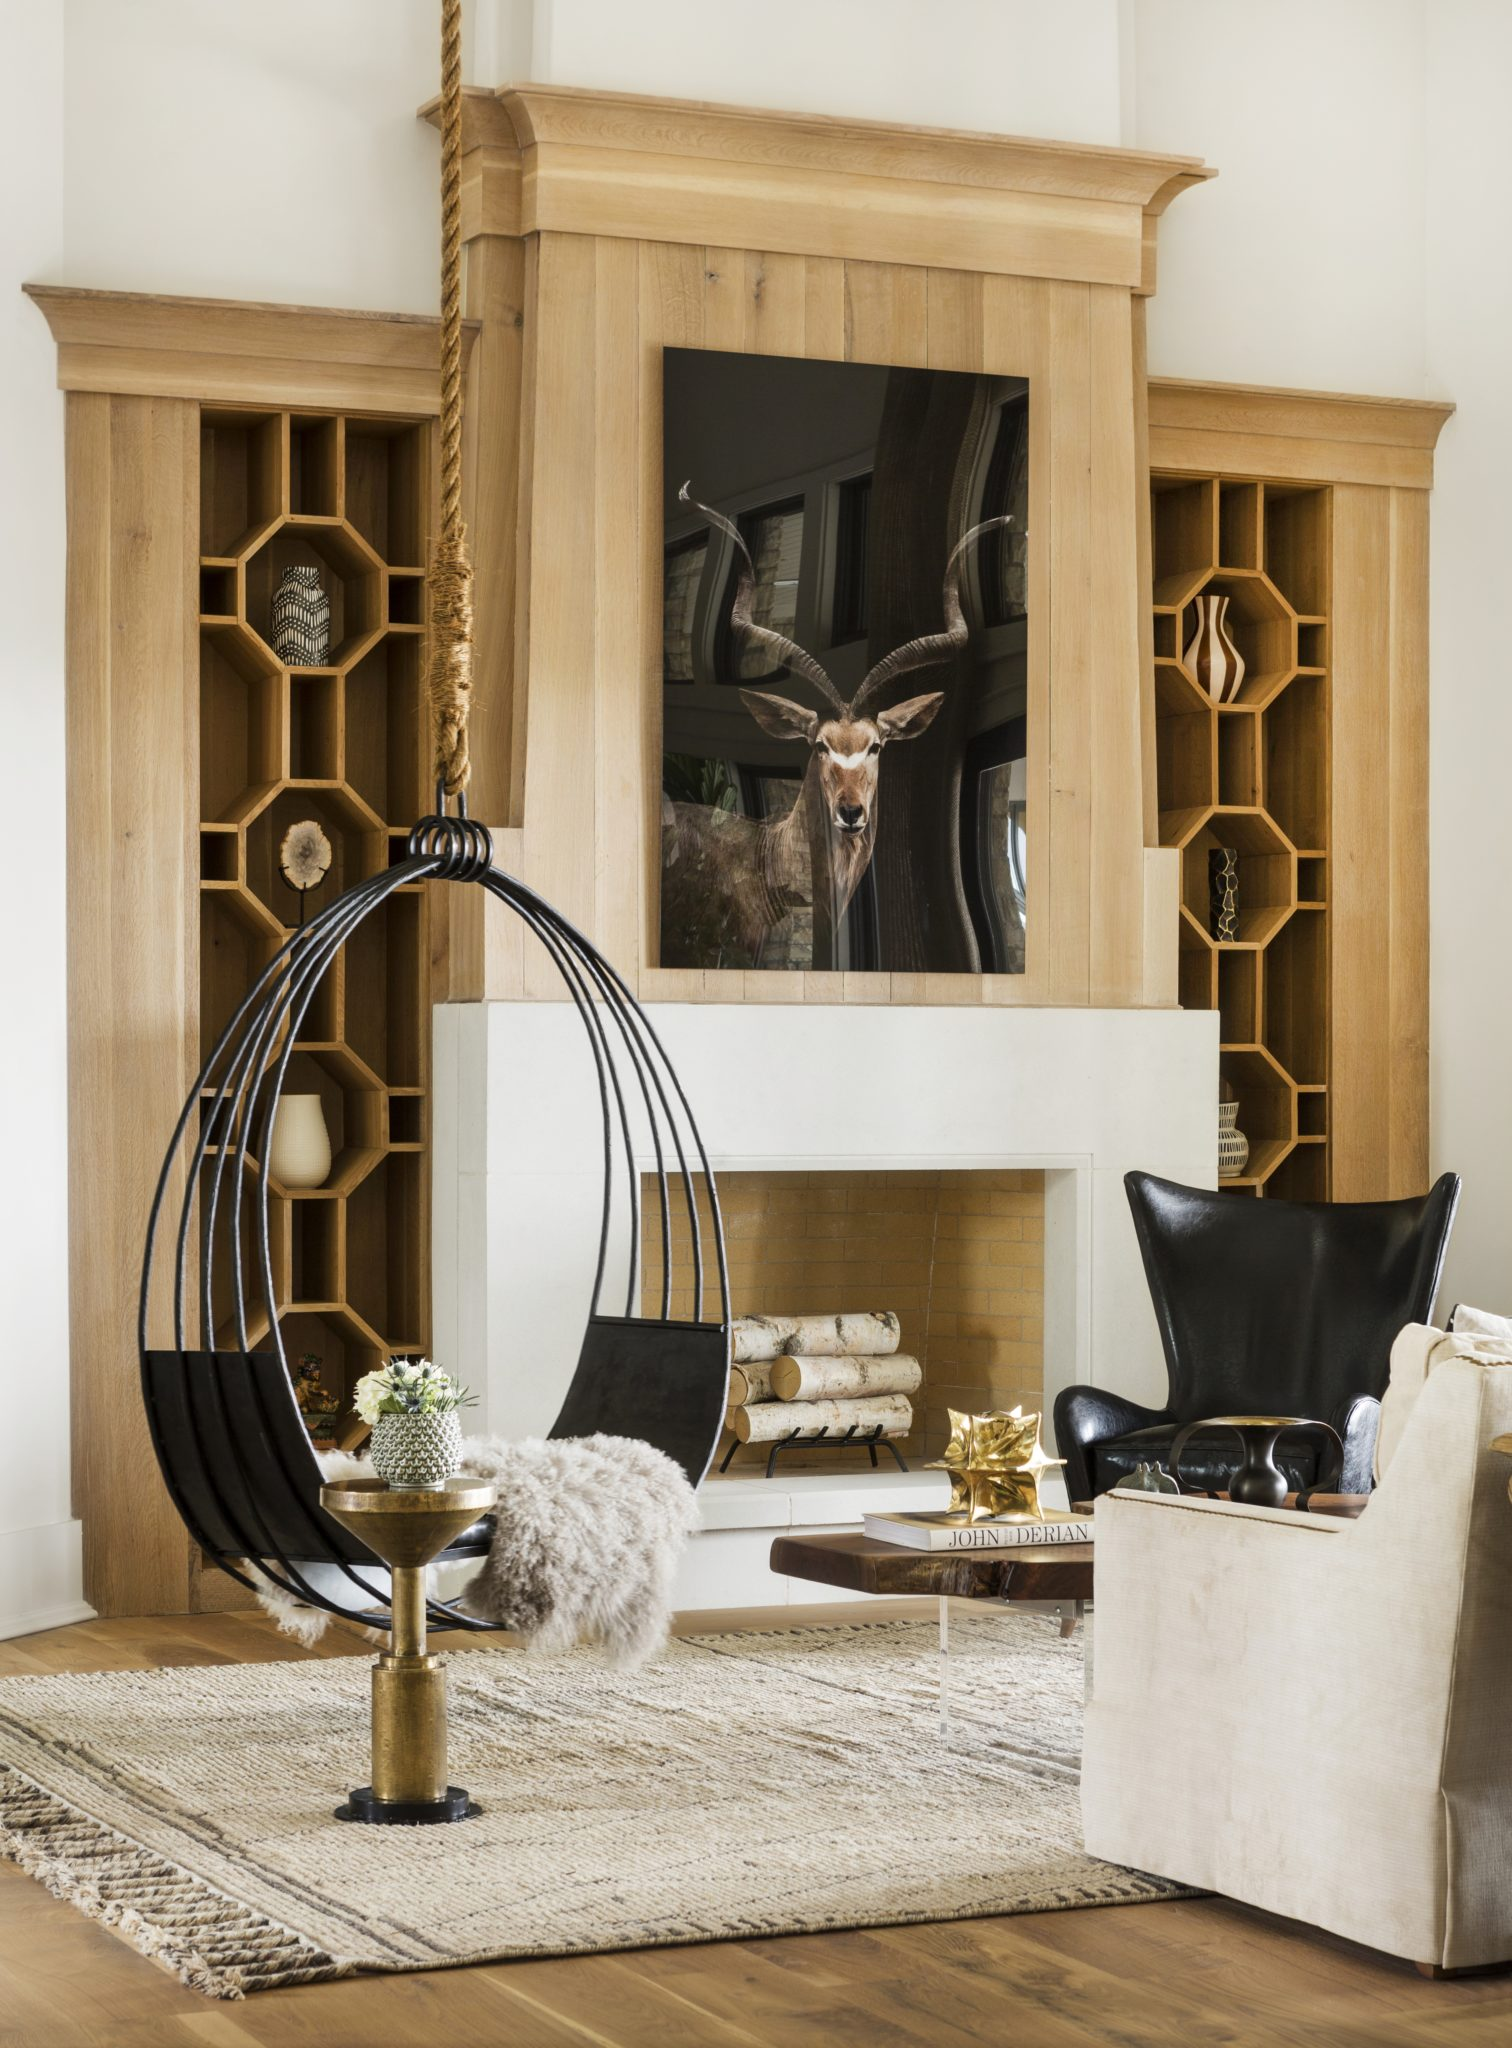 Horse Meadow country house featuring custom steel swing chair and intricate white oak bookcases. by Casey Sarkin Interior Design, Luna Inc.